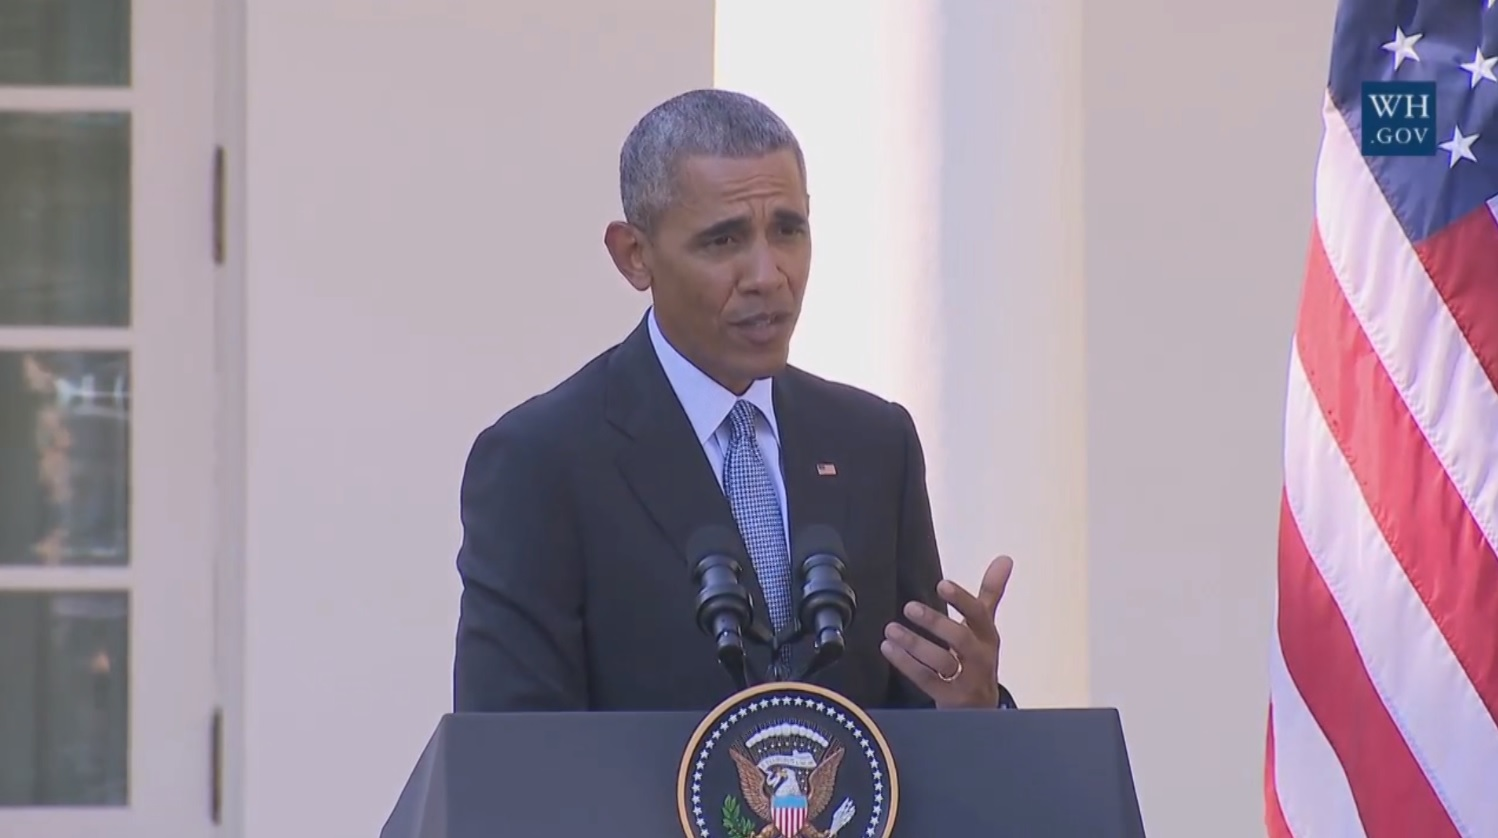 Obama to Trump: 'Stop whining' and try to earn votes